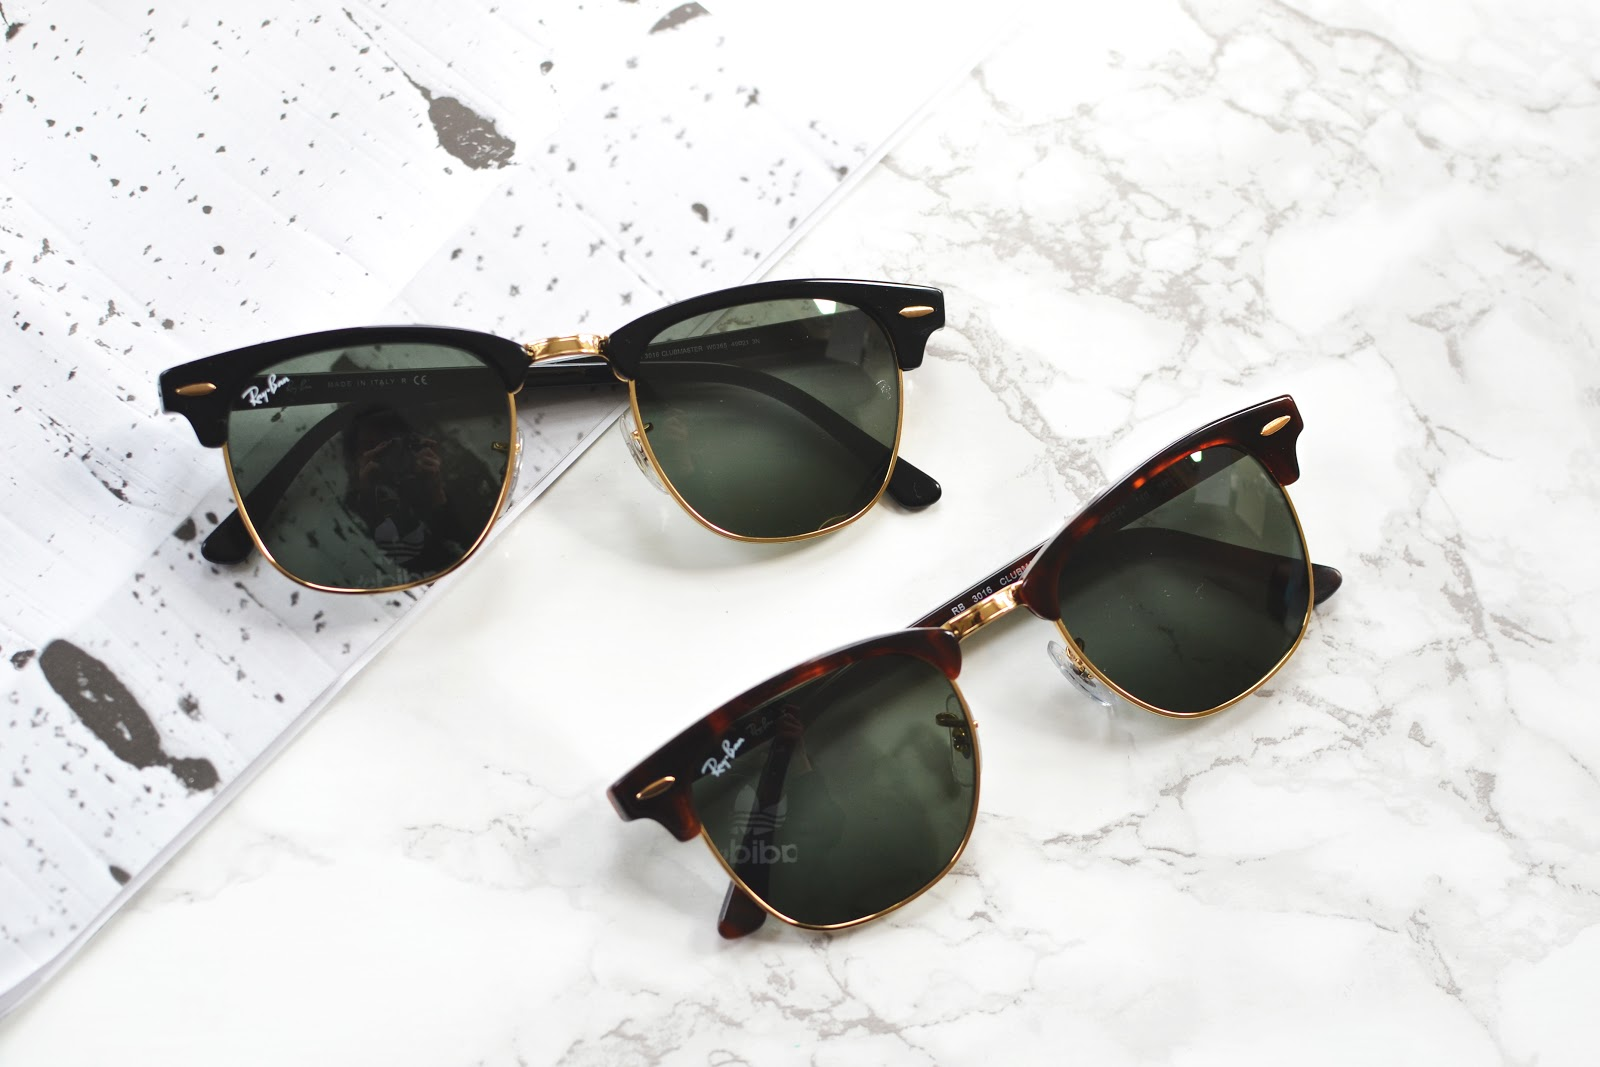 ray ban 3016 clubmasters in black and tortoiseshell